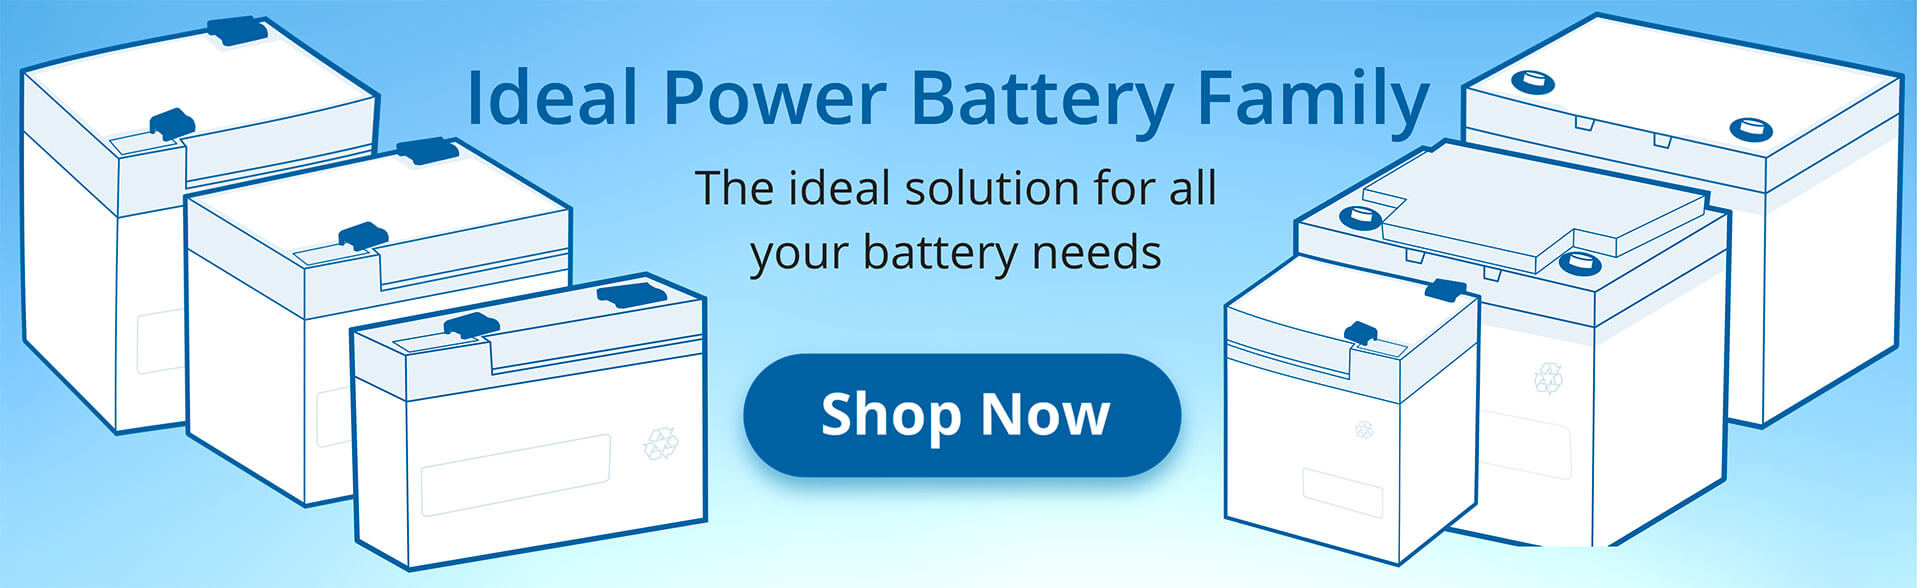 The ideal solution for all your battery needs